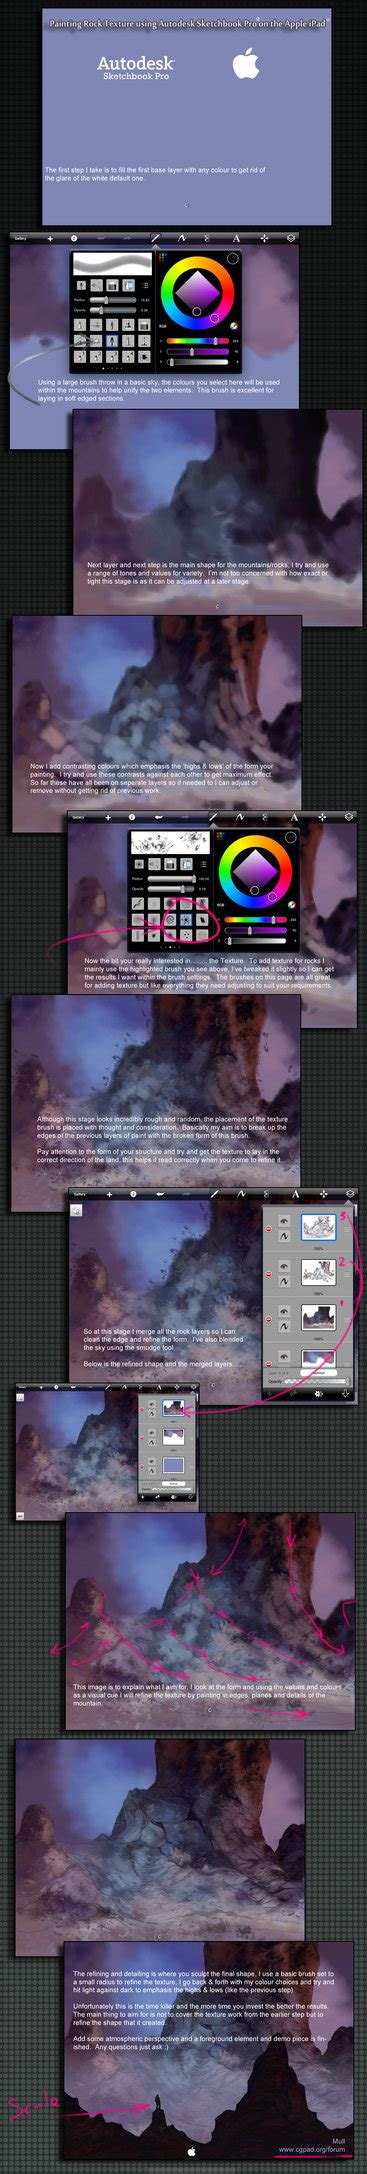 tutorial sketchbook ipad ipad sketchbook pro tutorial by mull art on deviantart